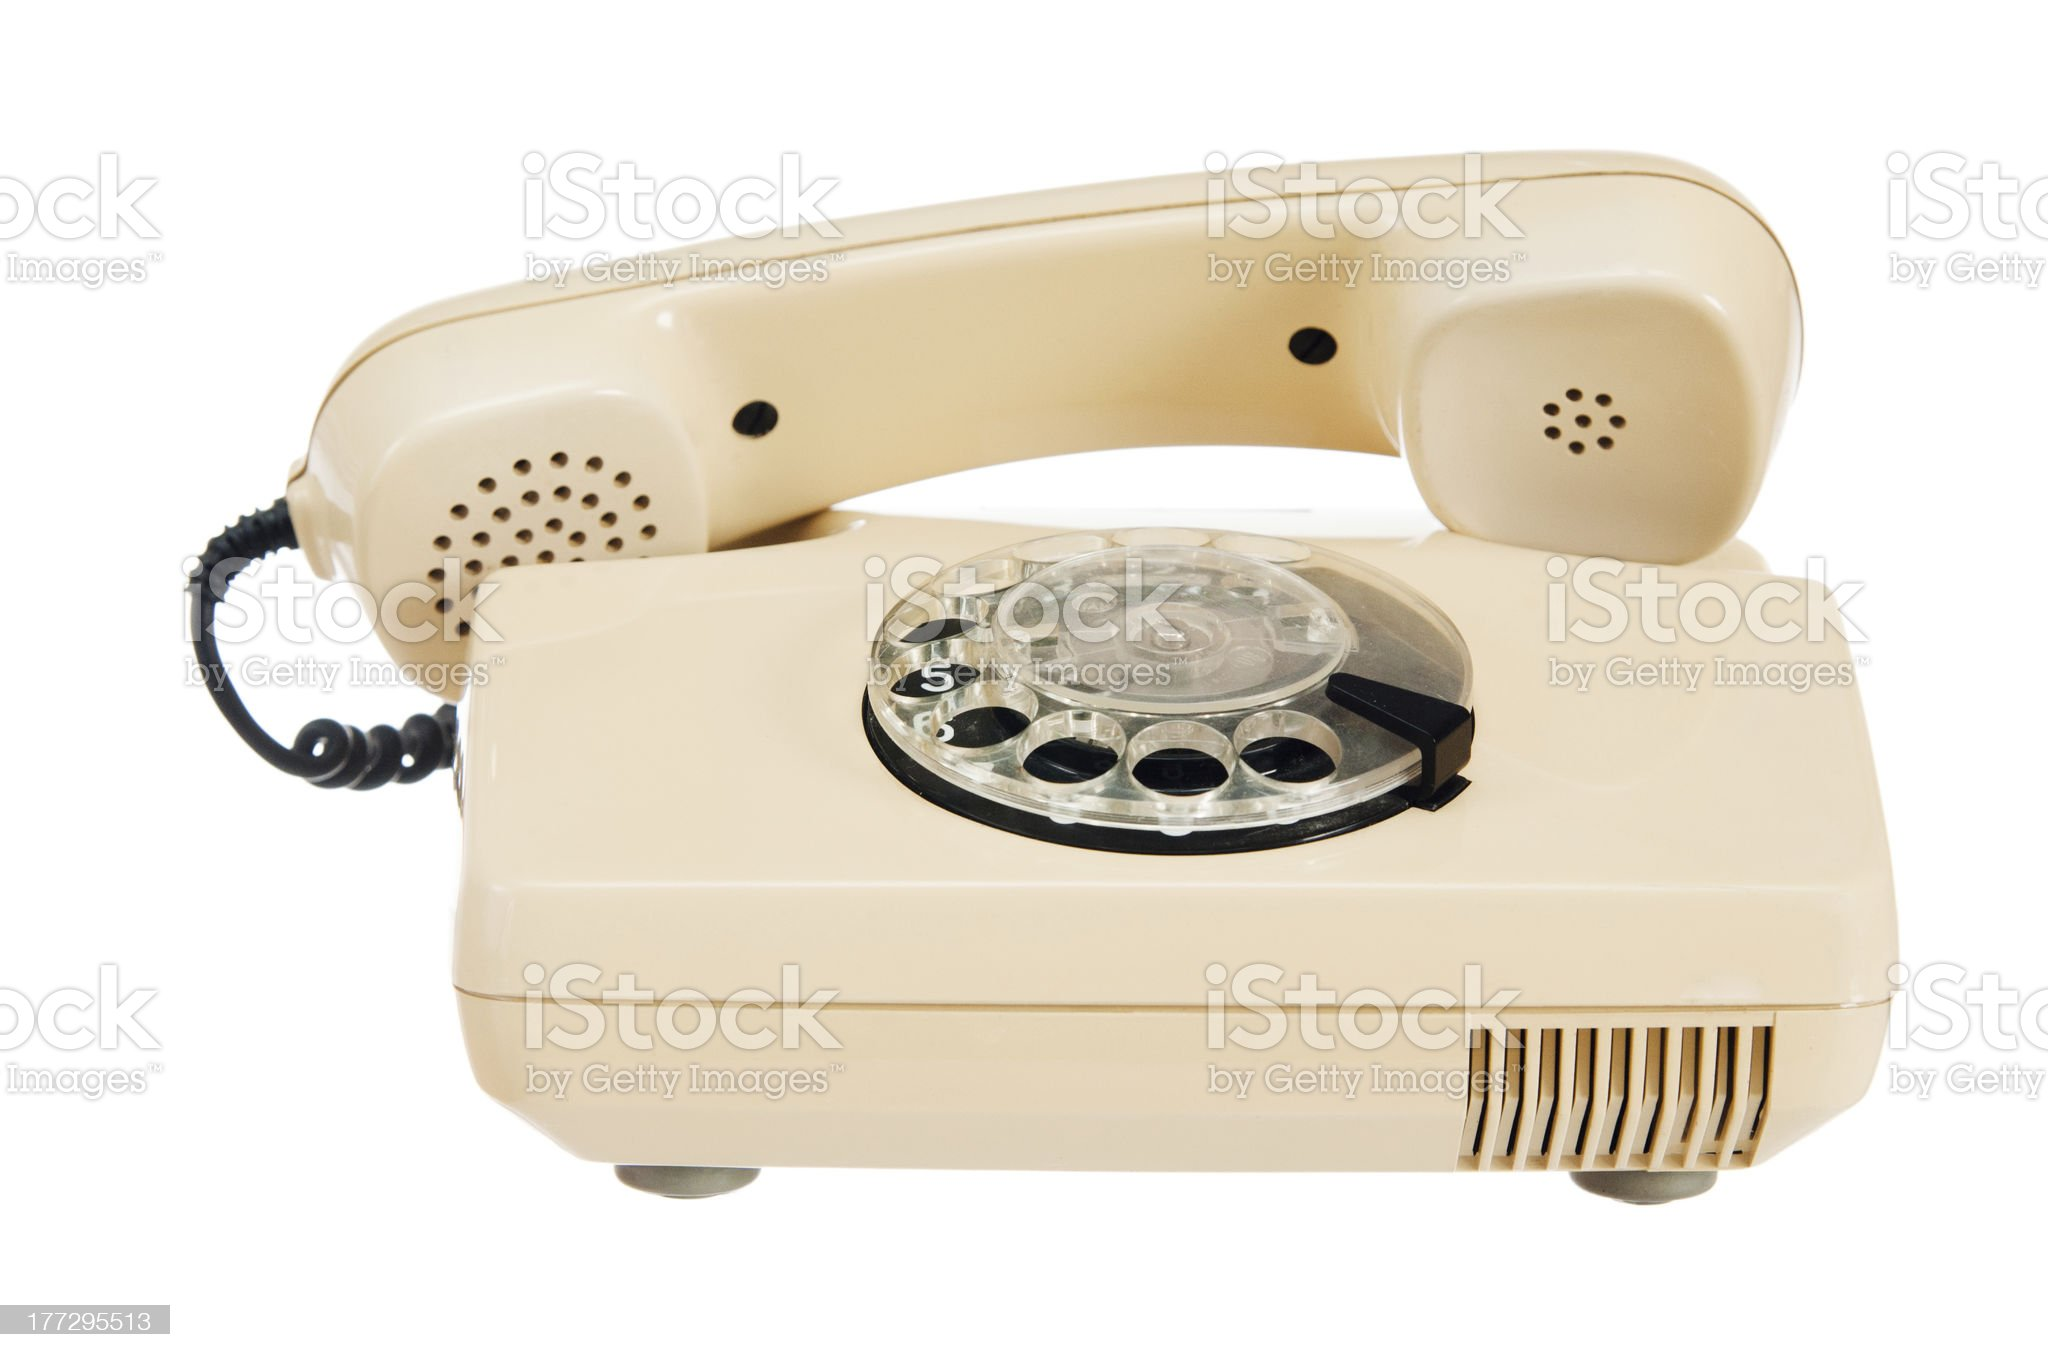 Old analog phone with a disk royalty-free stock photo